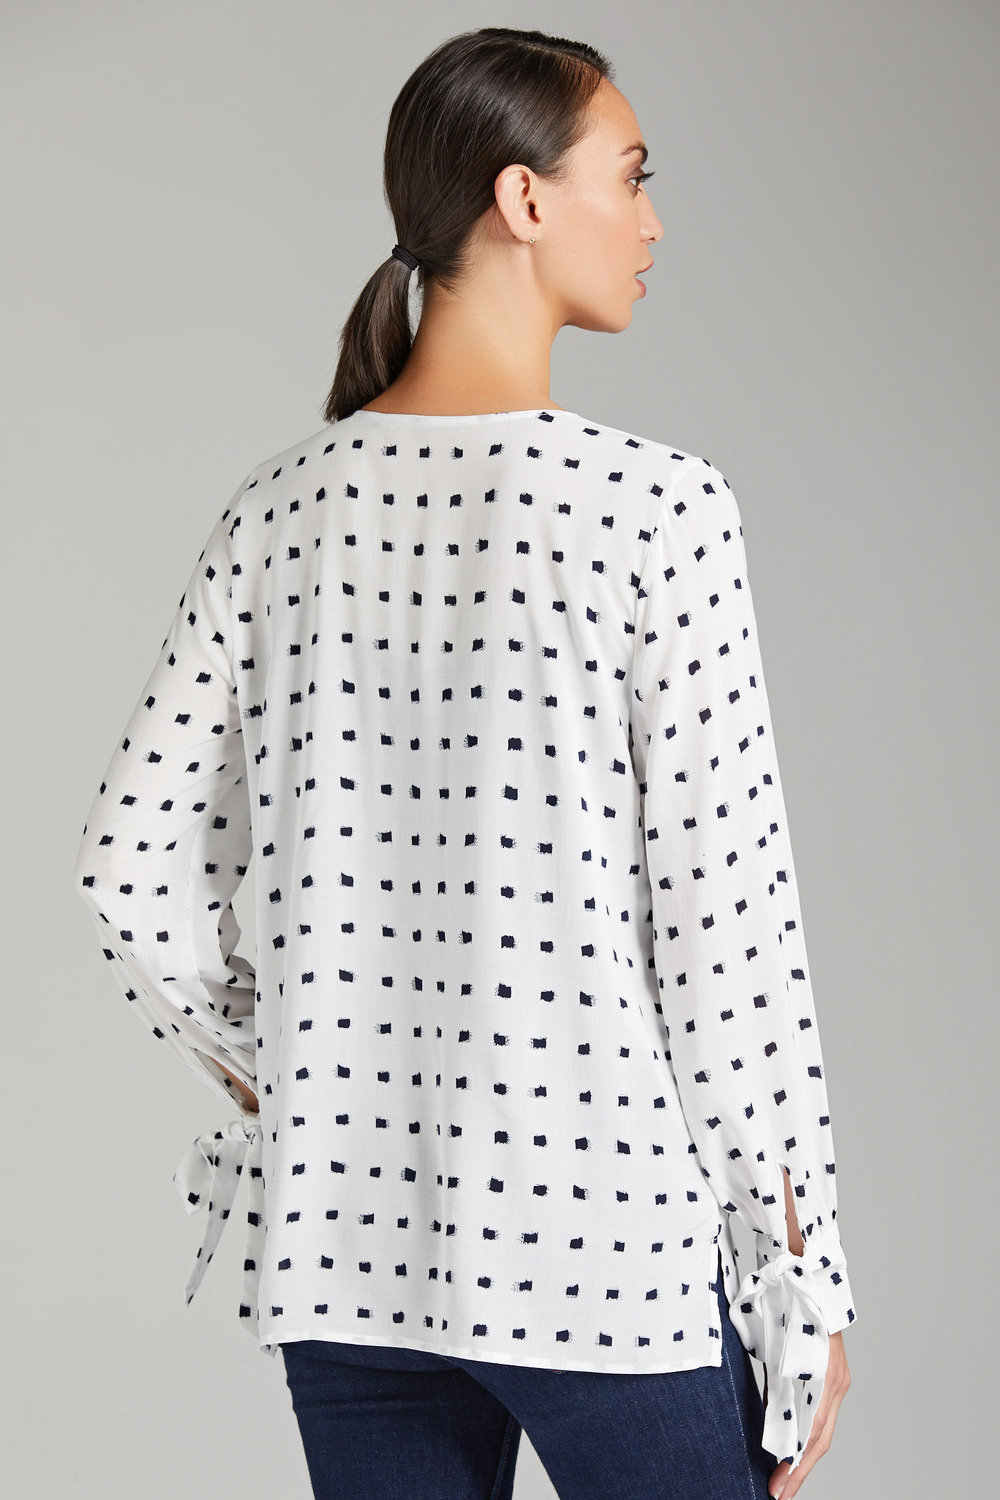 Printed Tie Cuff Plus Size Blouse | Old Navy | Clothes, Plus